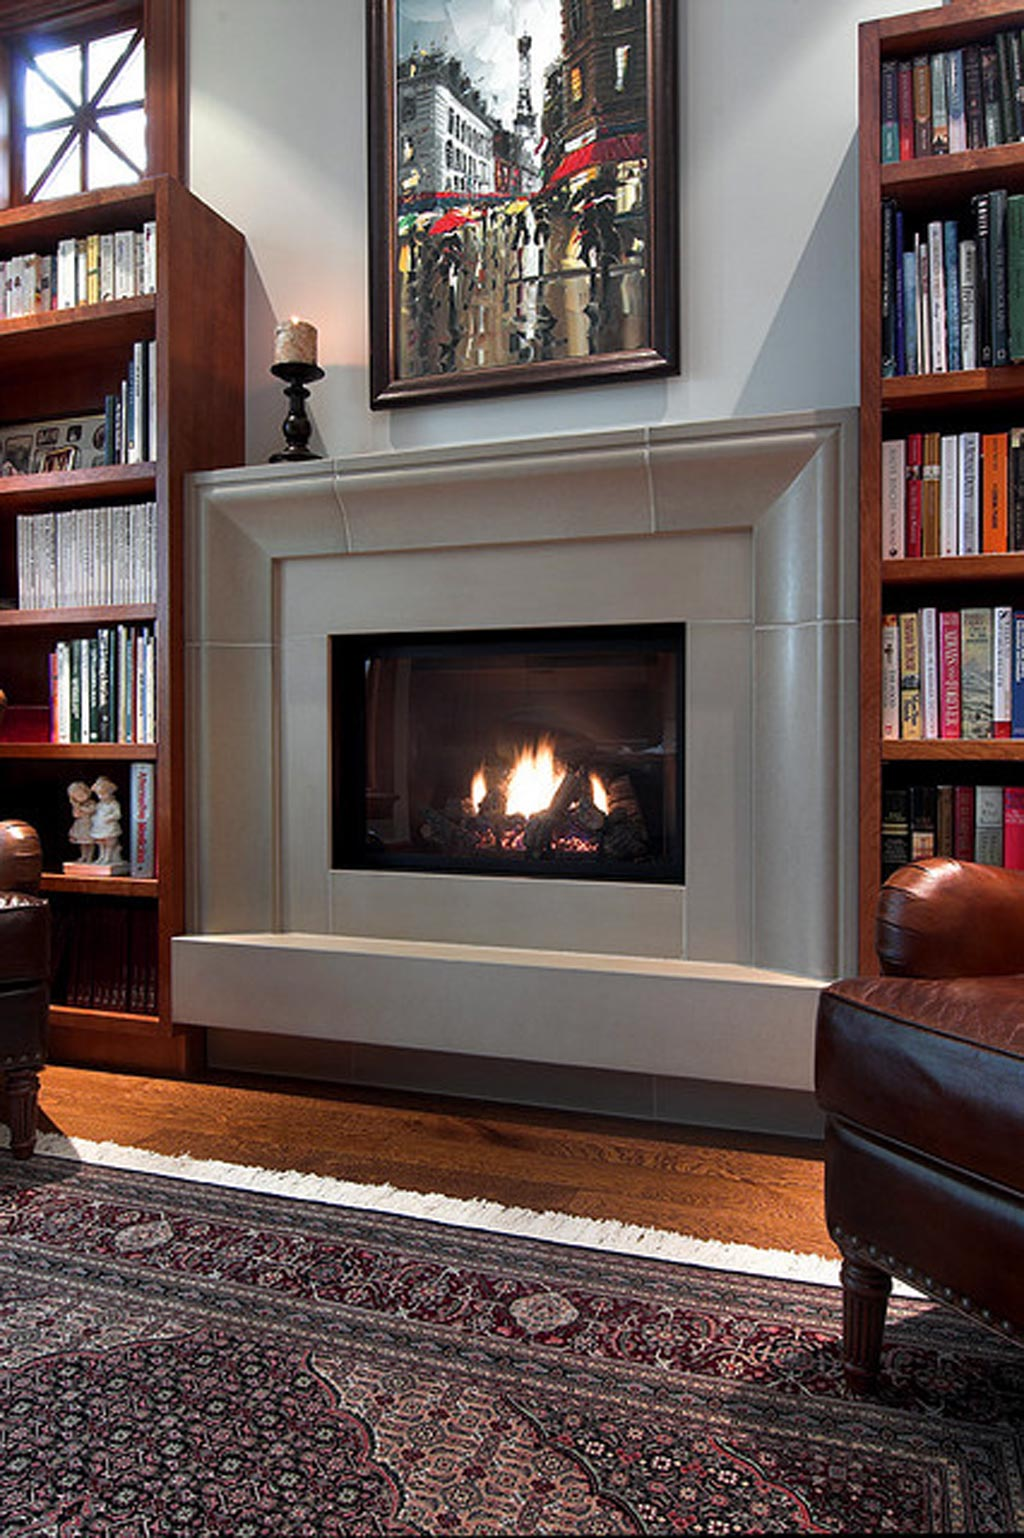 Some ideas of contemporary fireplace surrounds decor | FIREPLACE DESIGN IDEAS